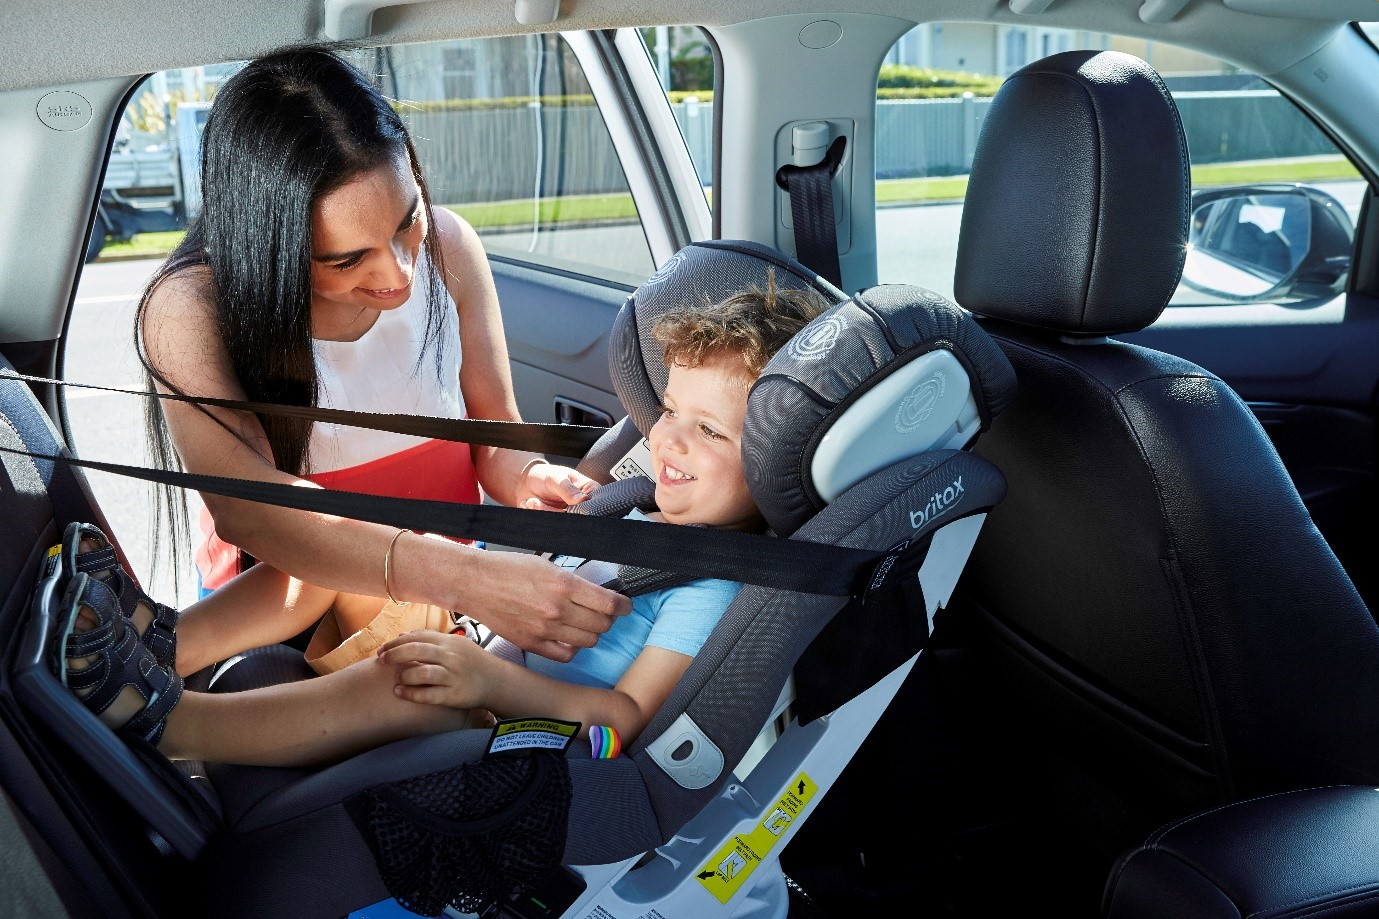 Infant Carrier Car Seat Guide Common Mistakes To Avoid When Fitting A Child Car Seat